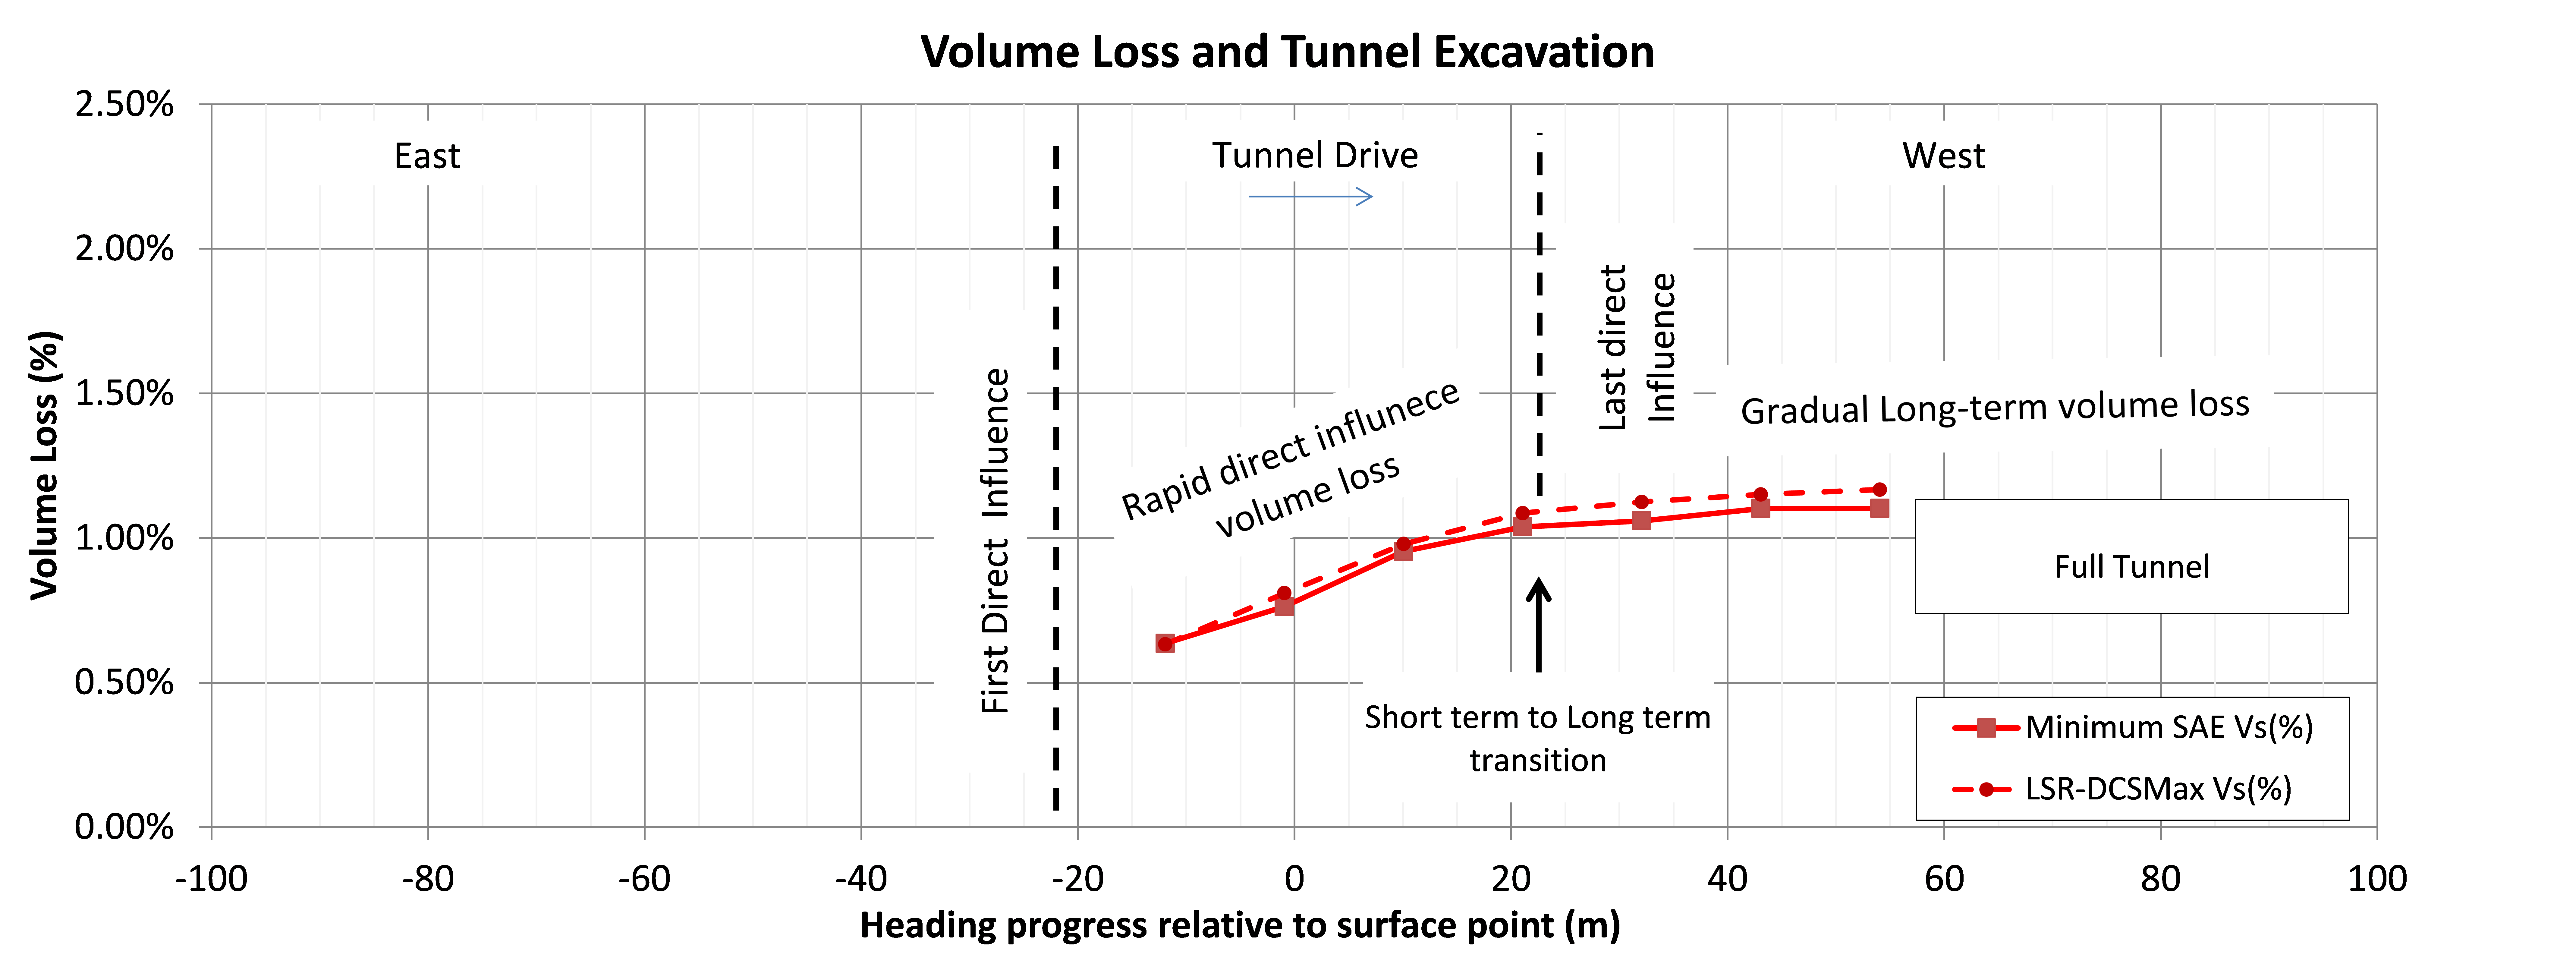 Figure 24 - Face dependent development of volume loss for the PTW-W EL, enlargement heading. Settlement is baselined to zero at first influence from the Enlargement.